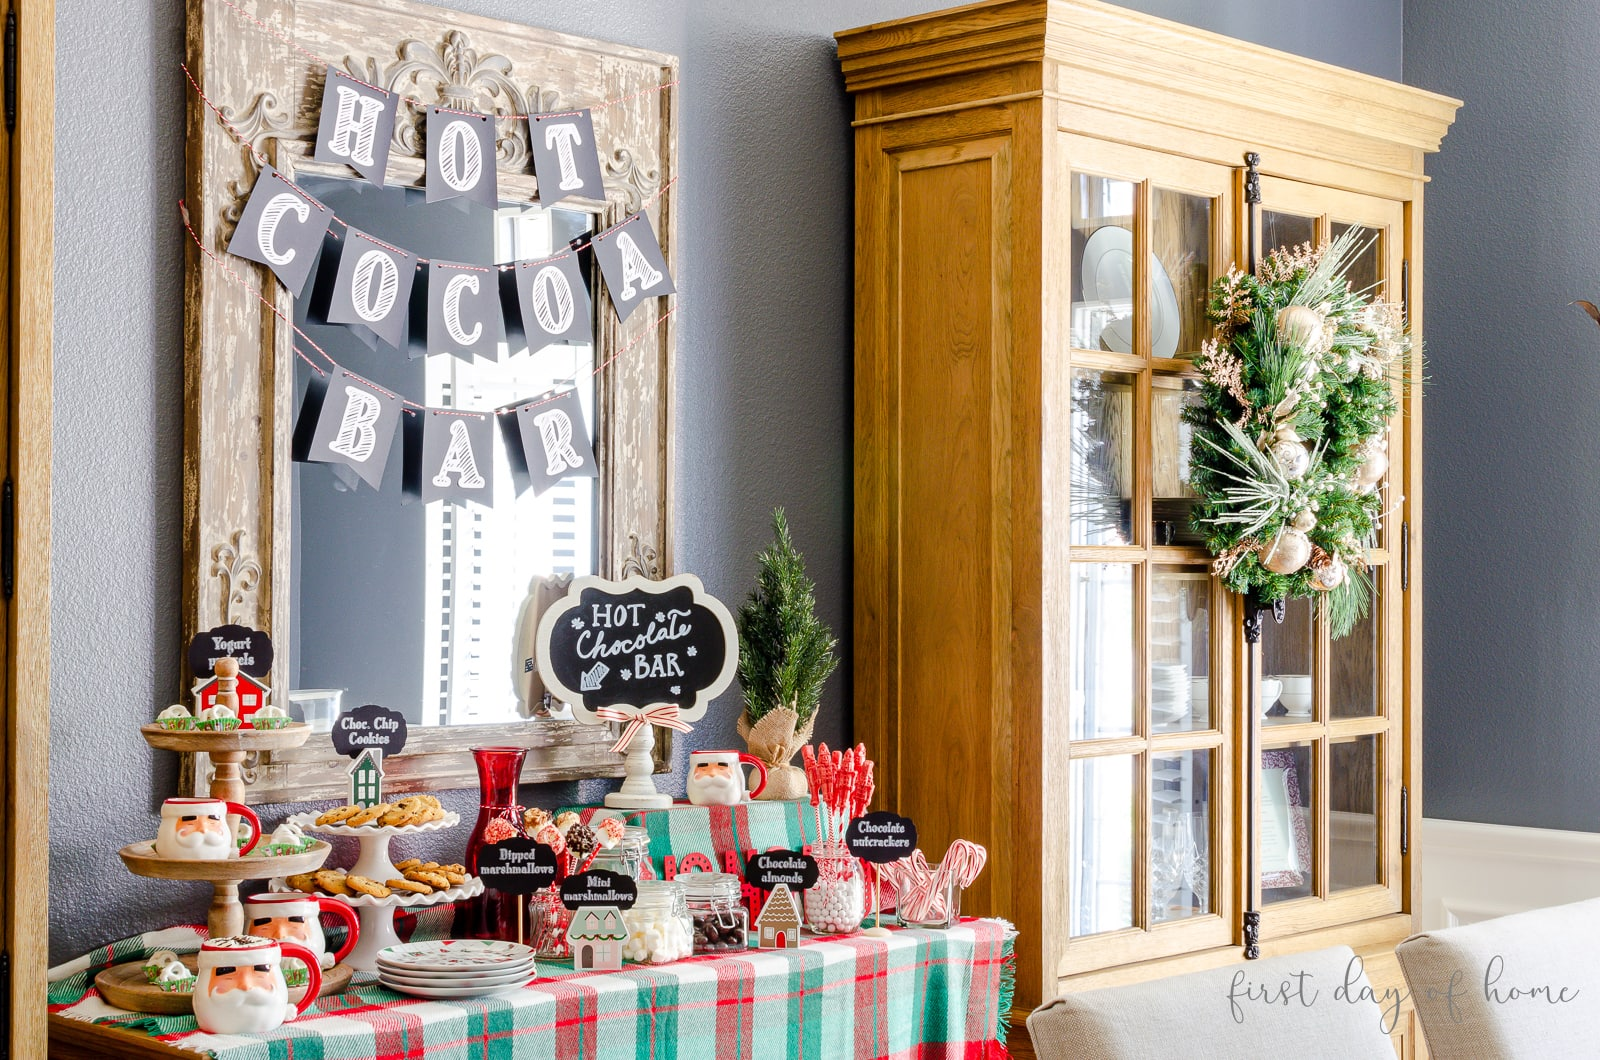 Hot cocoa bar with chalkboard signs and labels and cocoa toppings and accessories